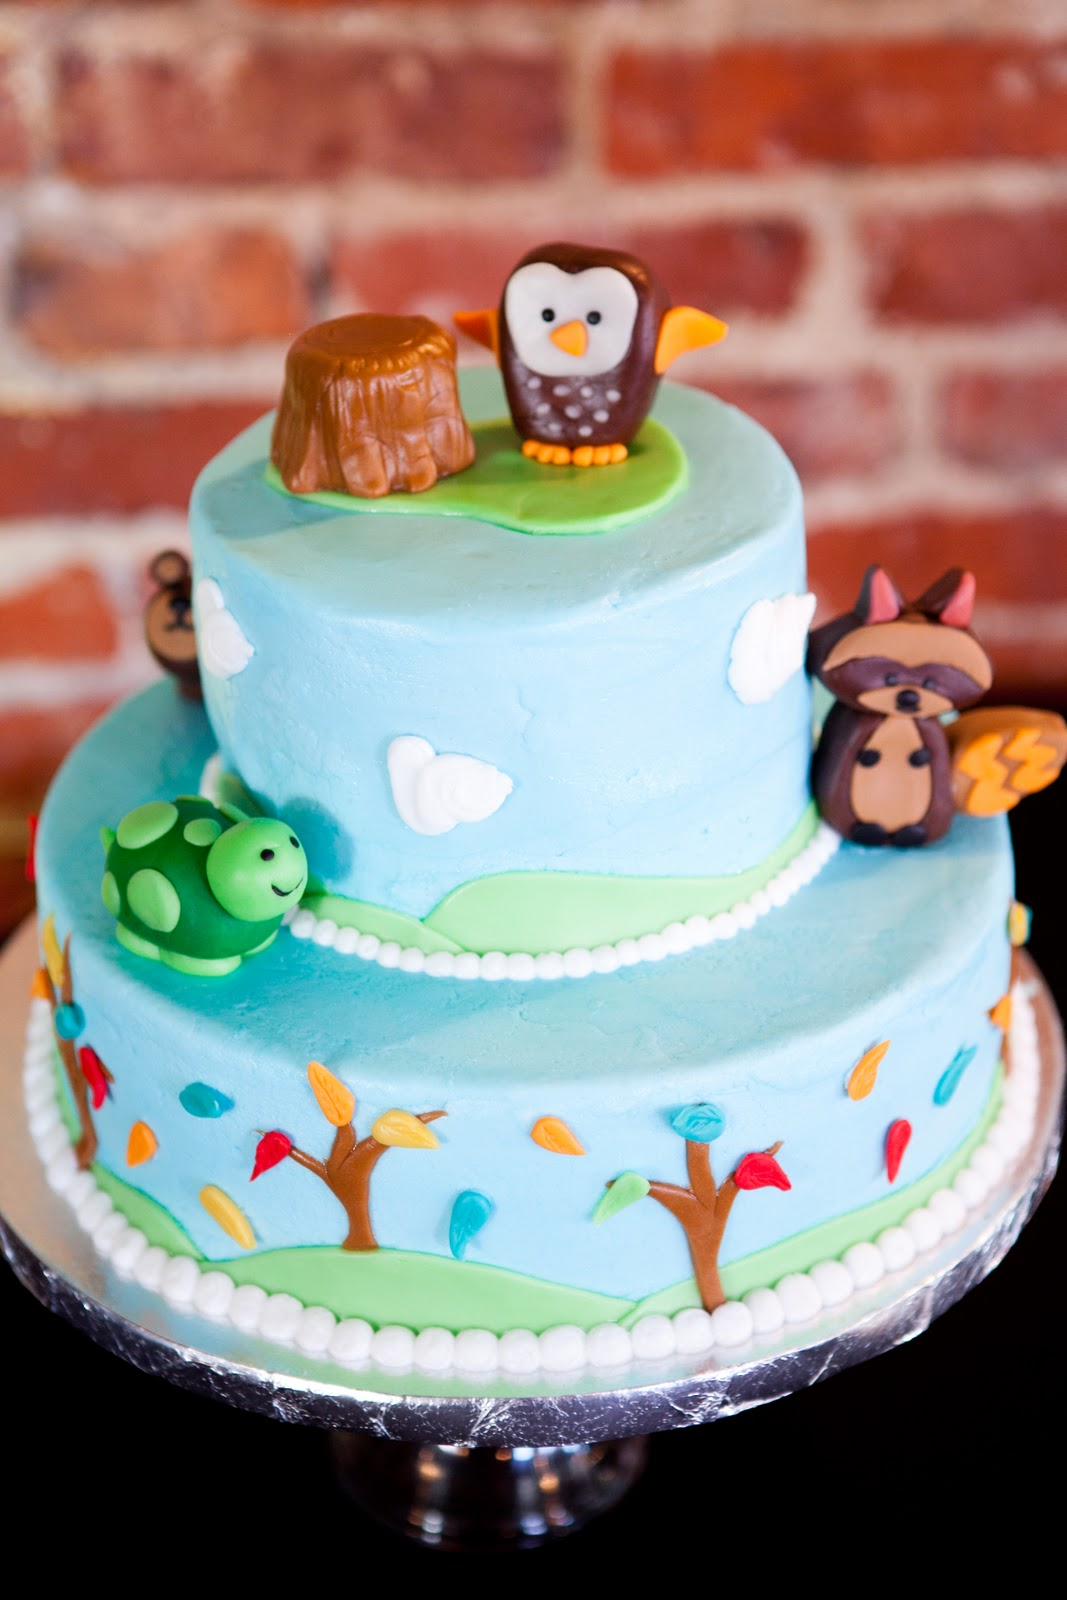 cake by cakes and other bakes out of st louis